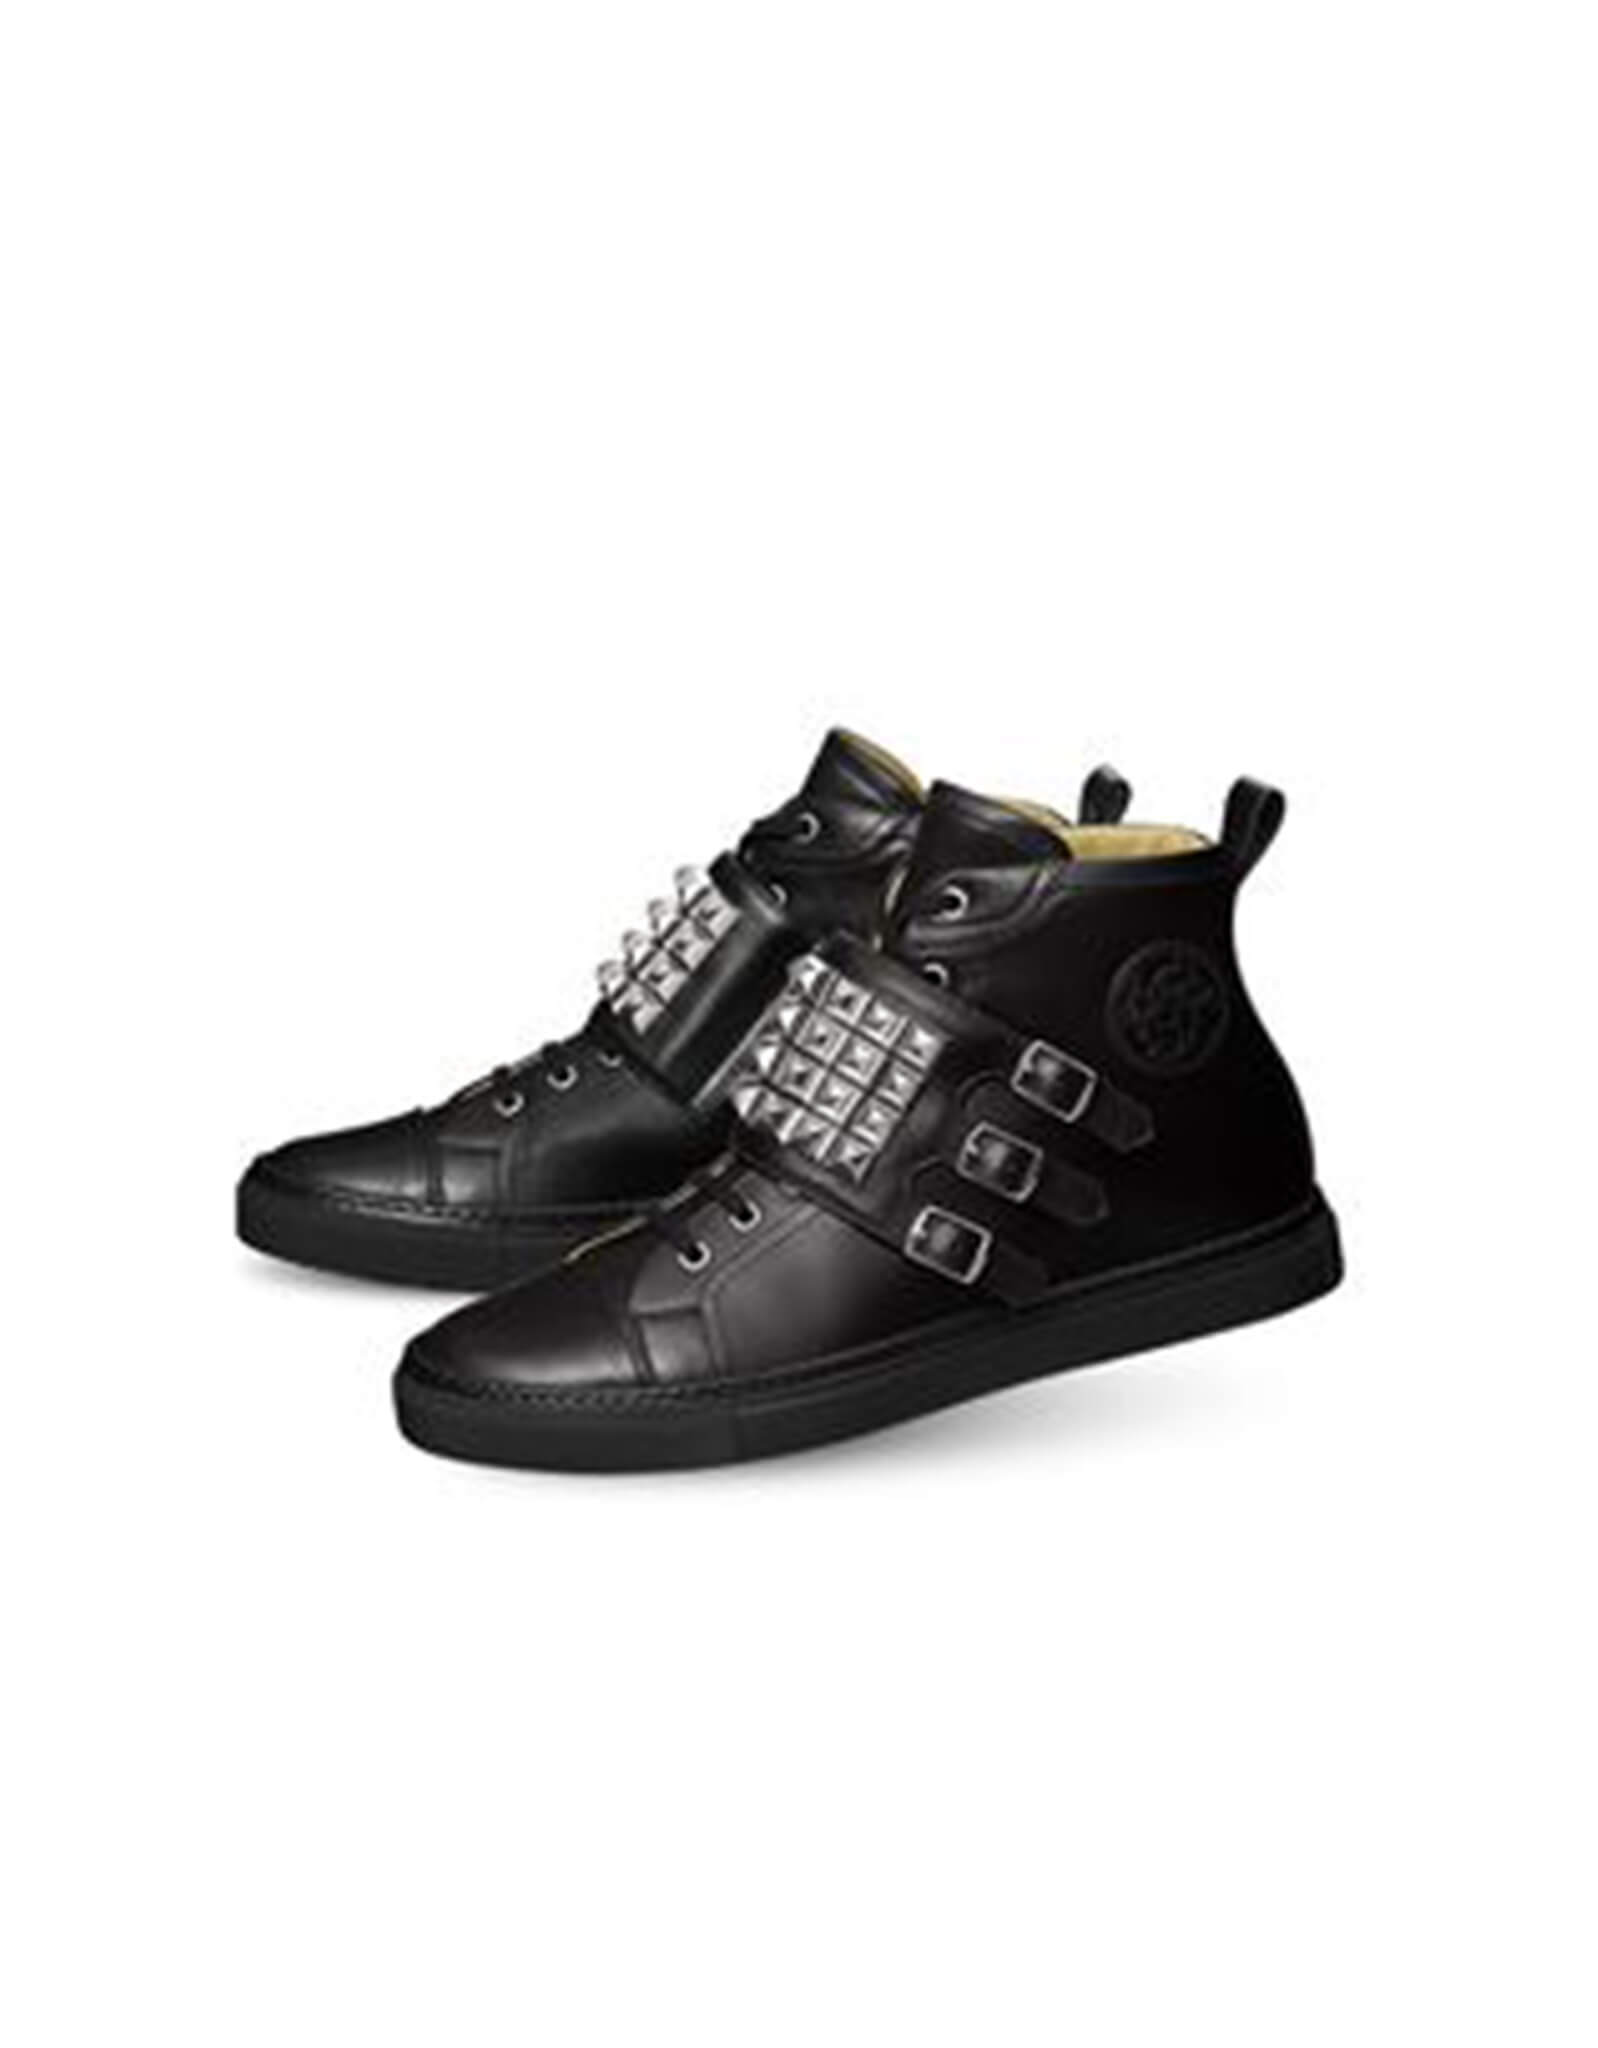 Hermes Limited Edition Lennox Shoes Men Fall Winter Collection 2015-2016